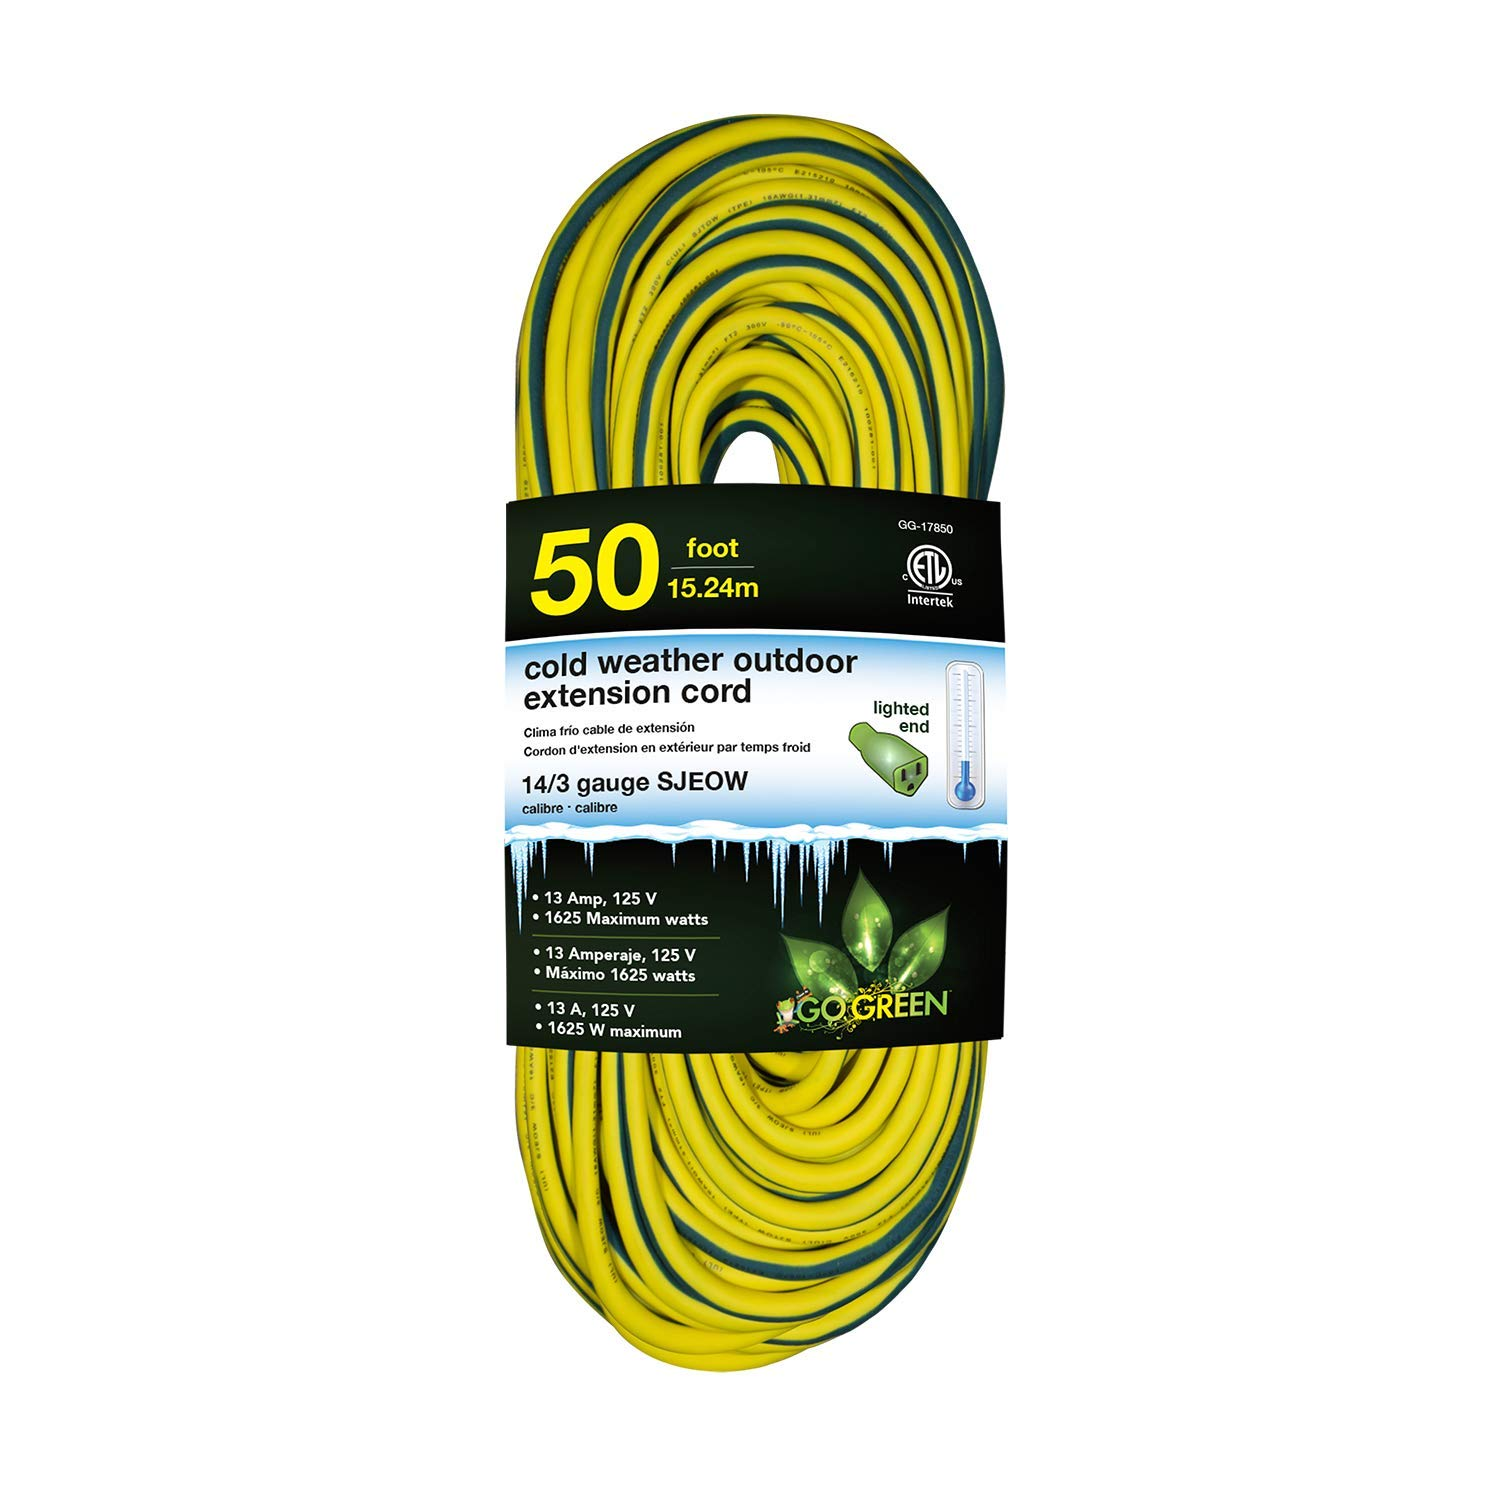 GoGreen Power GG-17850 14/3 50' SJEOW Cold Weather Extension Cord, Yellow - UL Approved